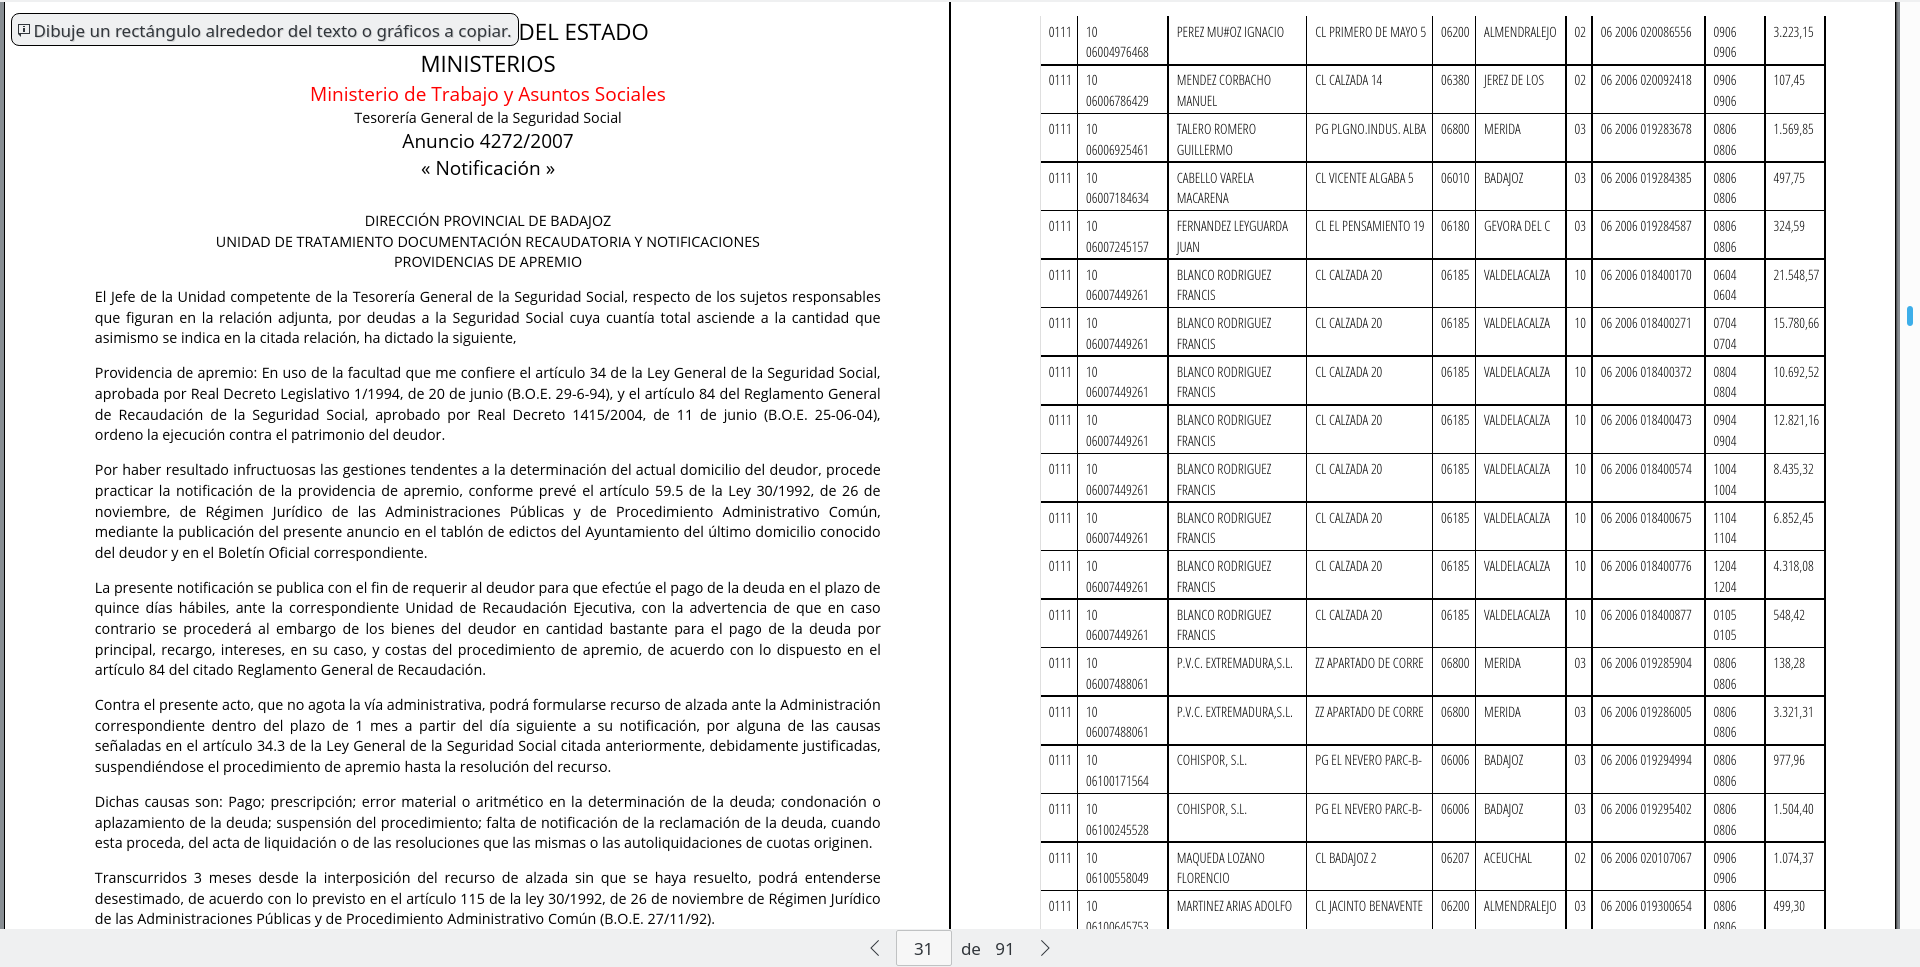 screenshot_viewing_pdf_generated_from_ff